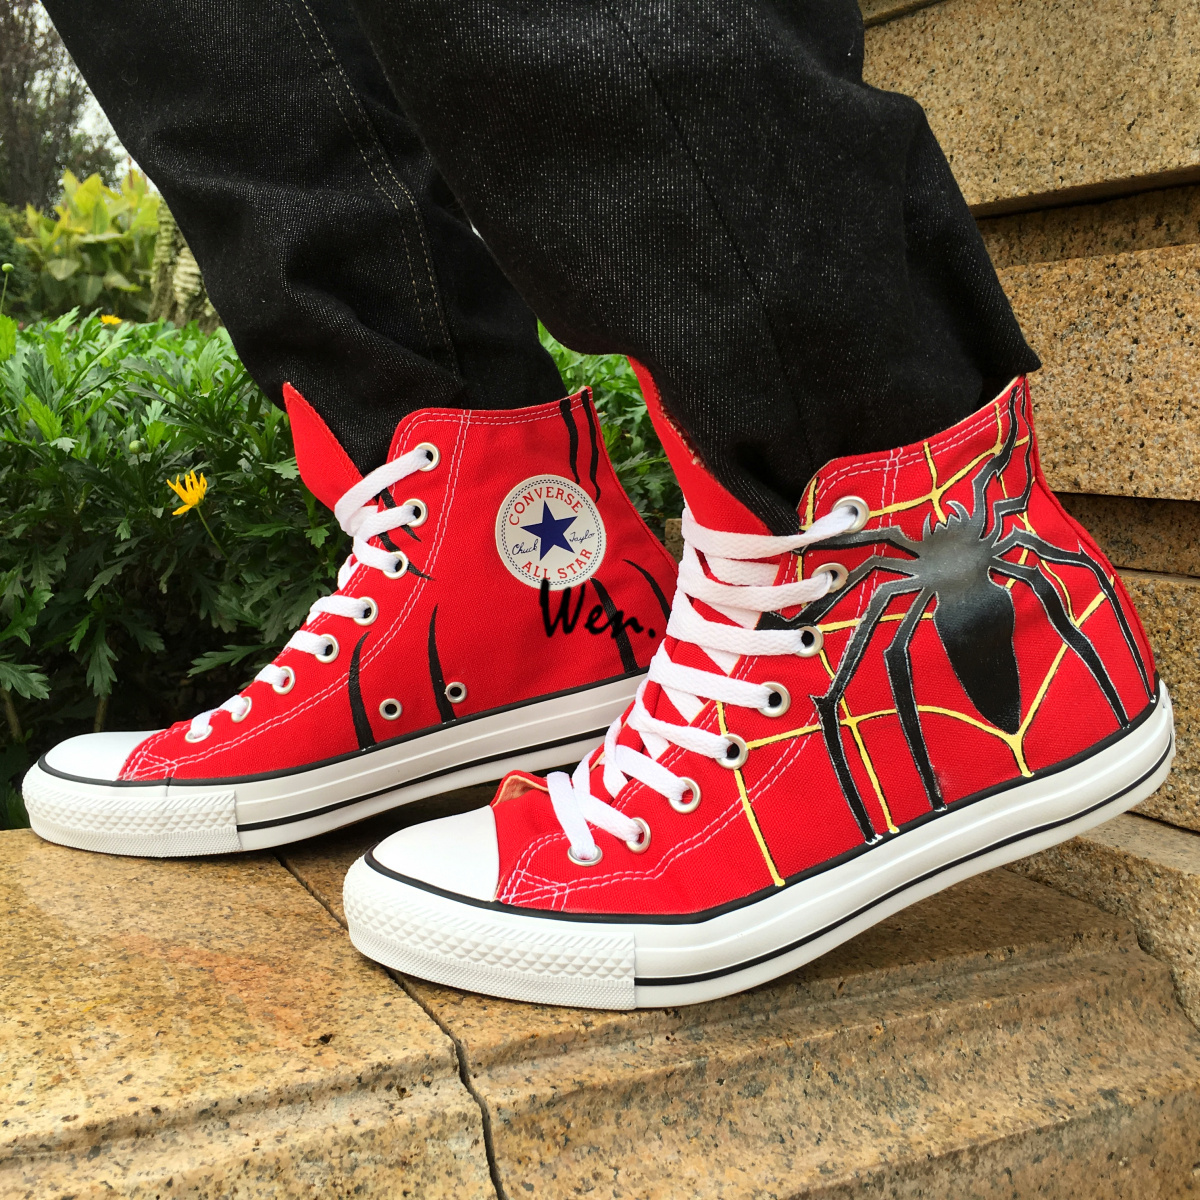 Custom Converse All Star Spider Red Canvas Sneakers Wen Hand Painted Shoes Men Women Unique Casual Shoes Christmas Gifts